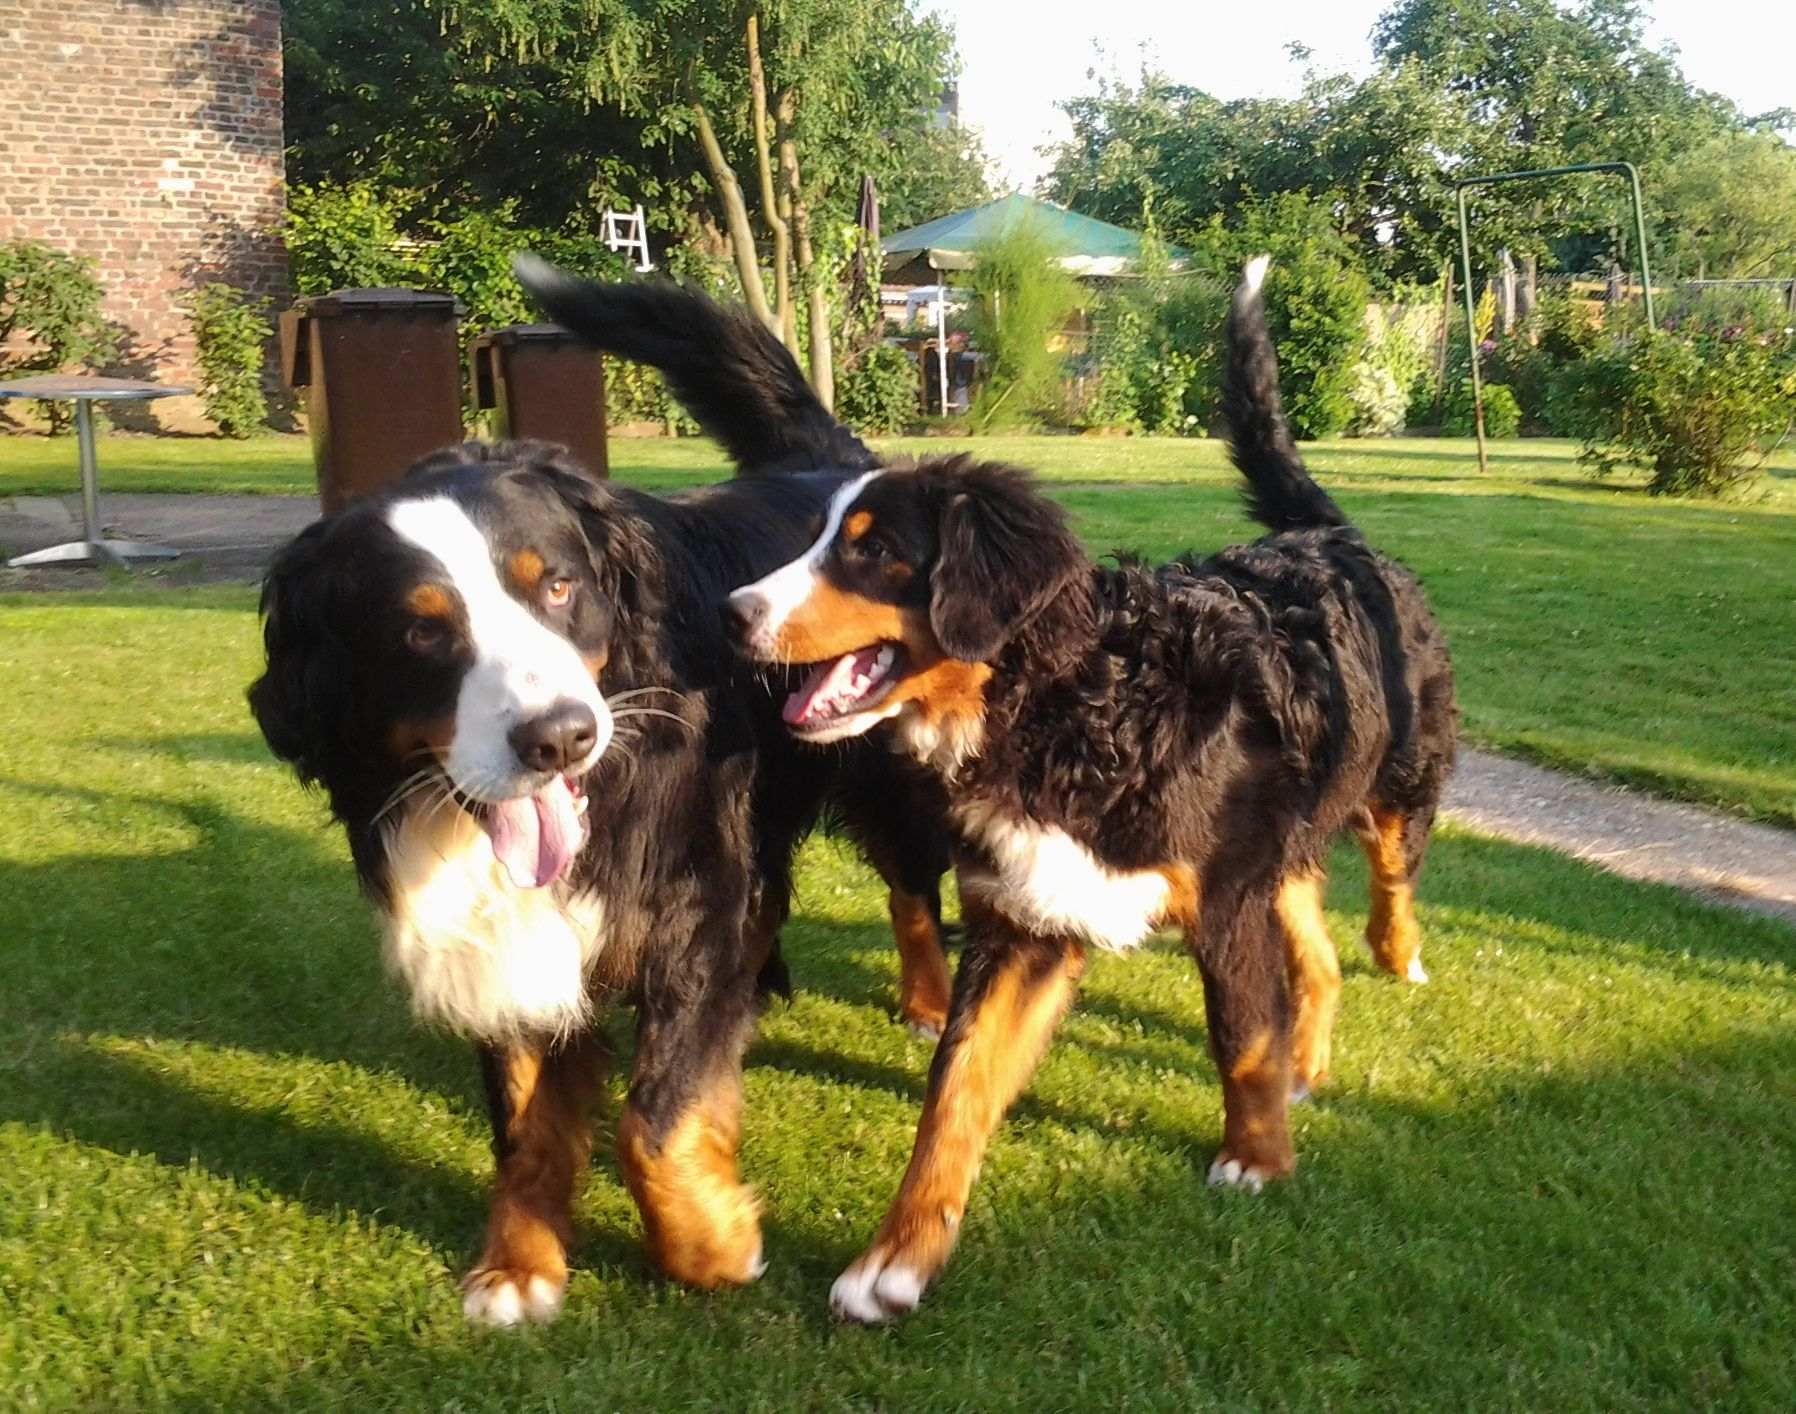 Thursdaytrivia Normal Adult Dogs Have How Many Teeth A 24 B 38 C 42 D 32 Mountain Dog Breeds Swiss Mountain Dogs Bernese Mountain